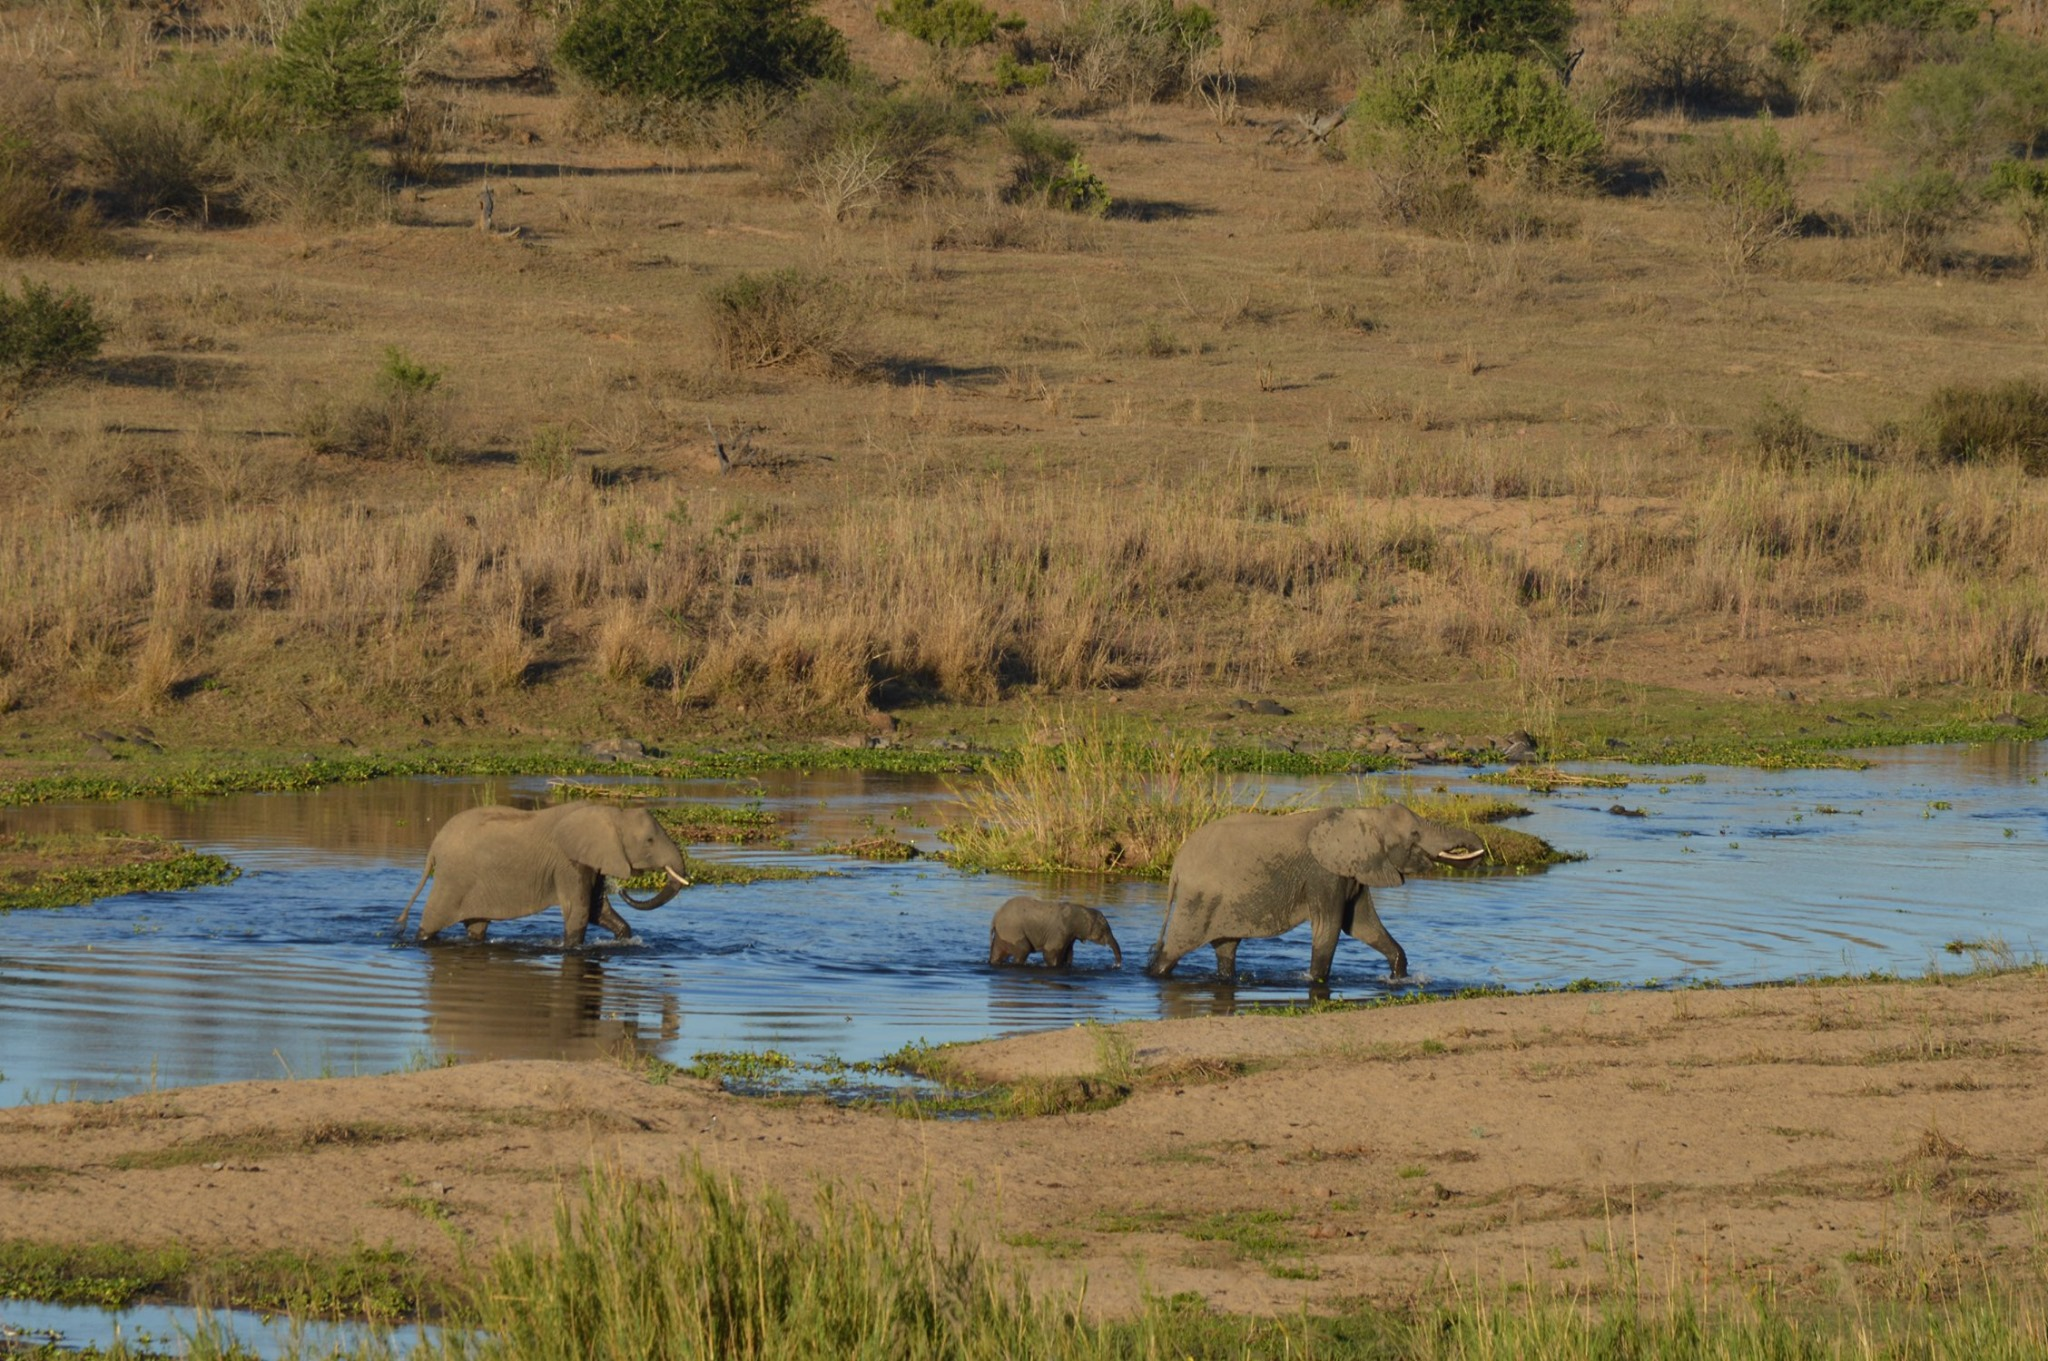 Elephants crossing the river seen from Bucklers Africa Lodge